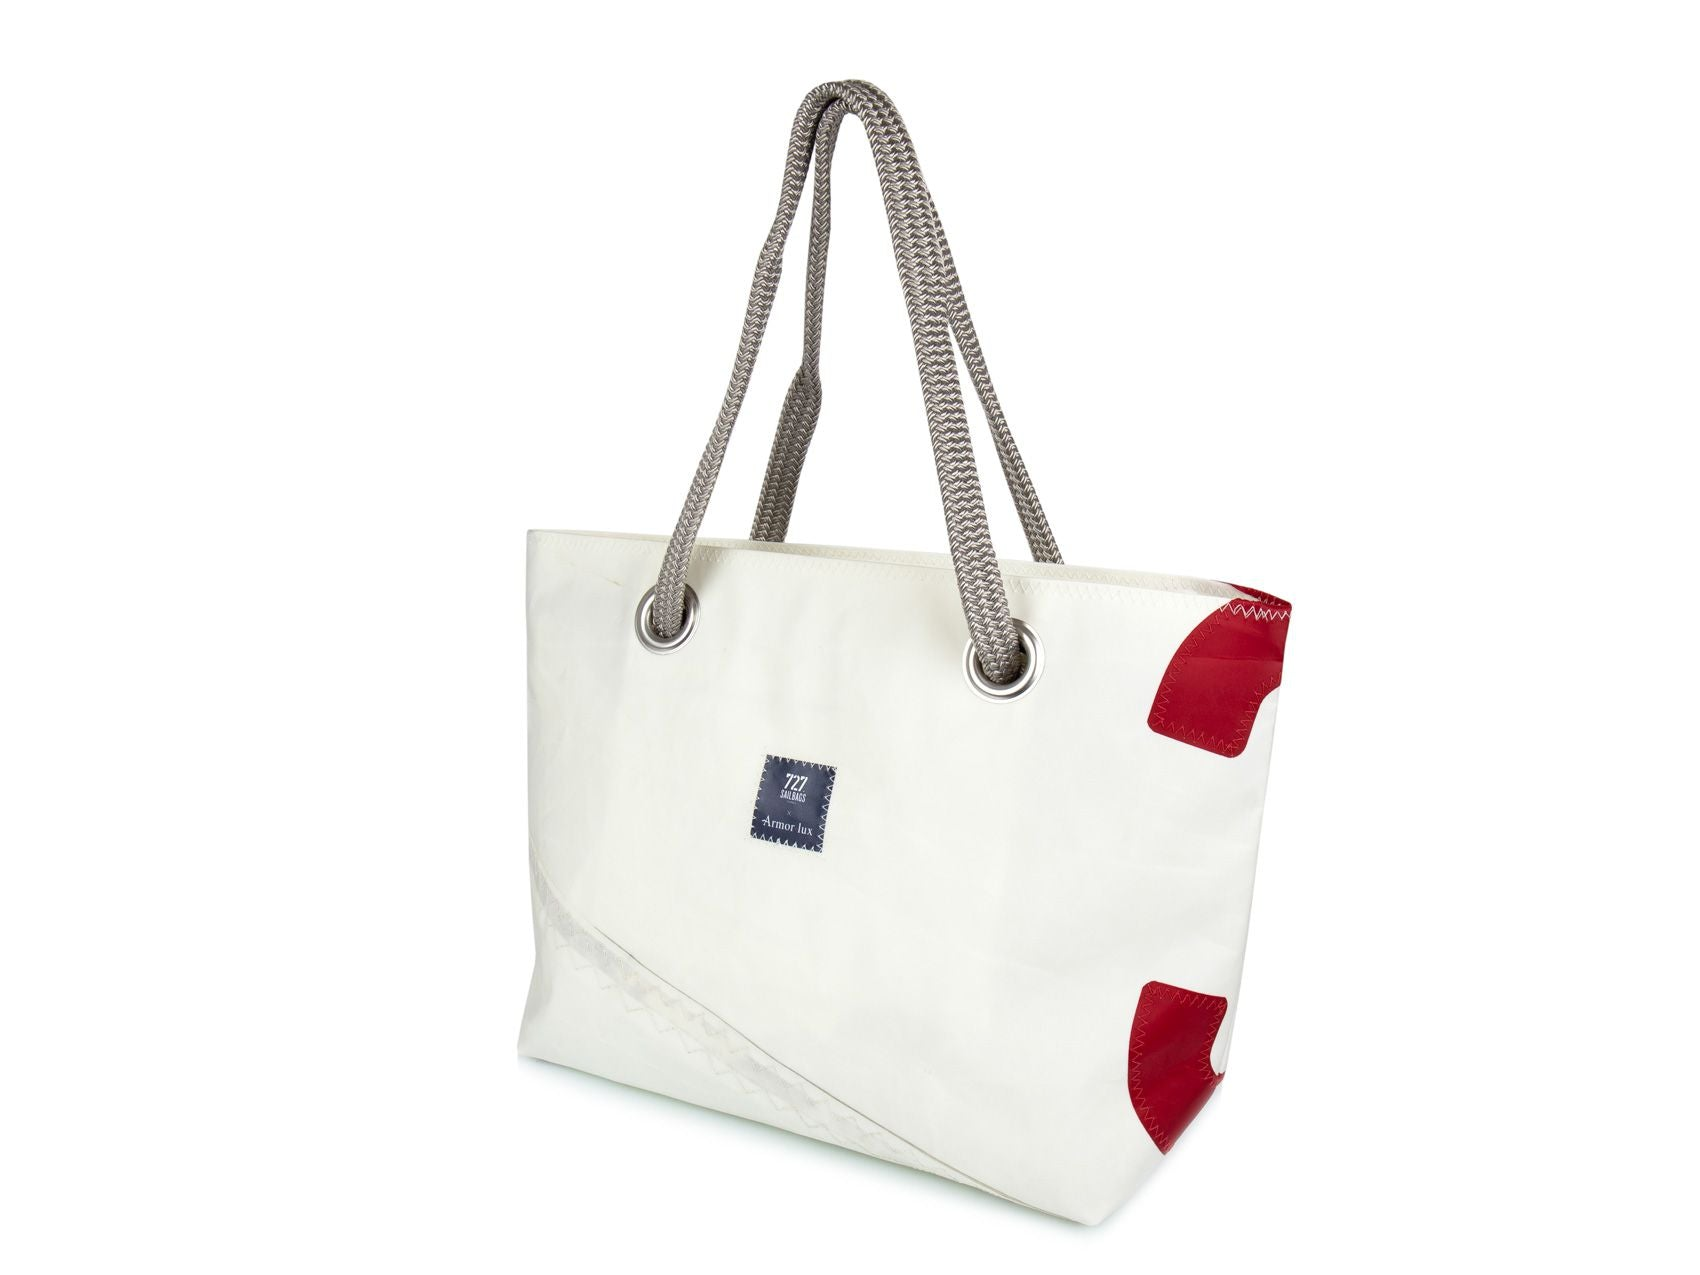 With its blue stripes and red number, the Charlie carry bag by 727Sailbags has been designed for lovers of all things nautical with a strong sense of fashion. Hand-sewn in France, this chic and practical carry bag is made from 100% recycled sails.